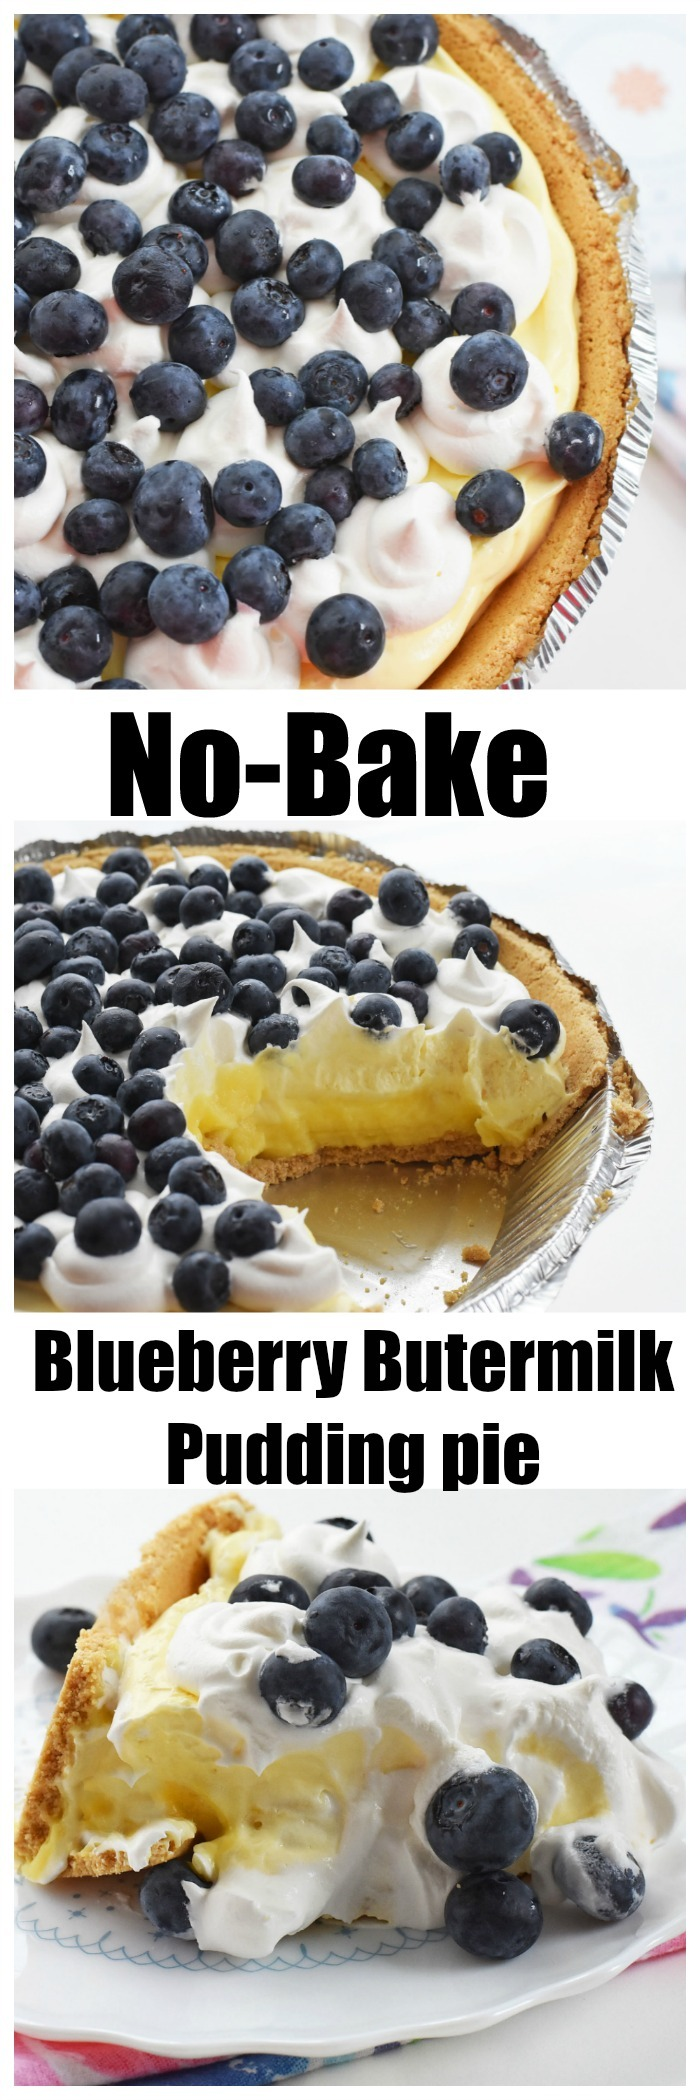 No-Bake Blueberry Pie Pudding Pie Recipe